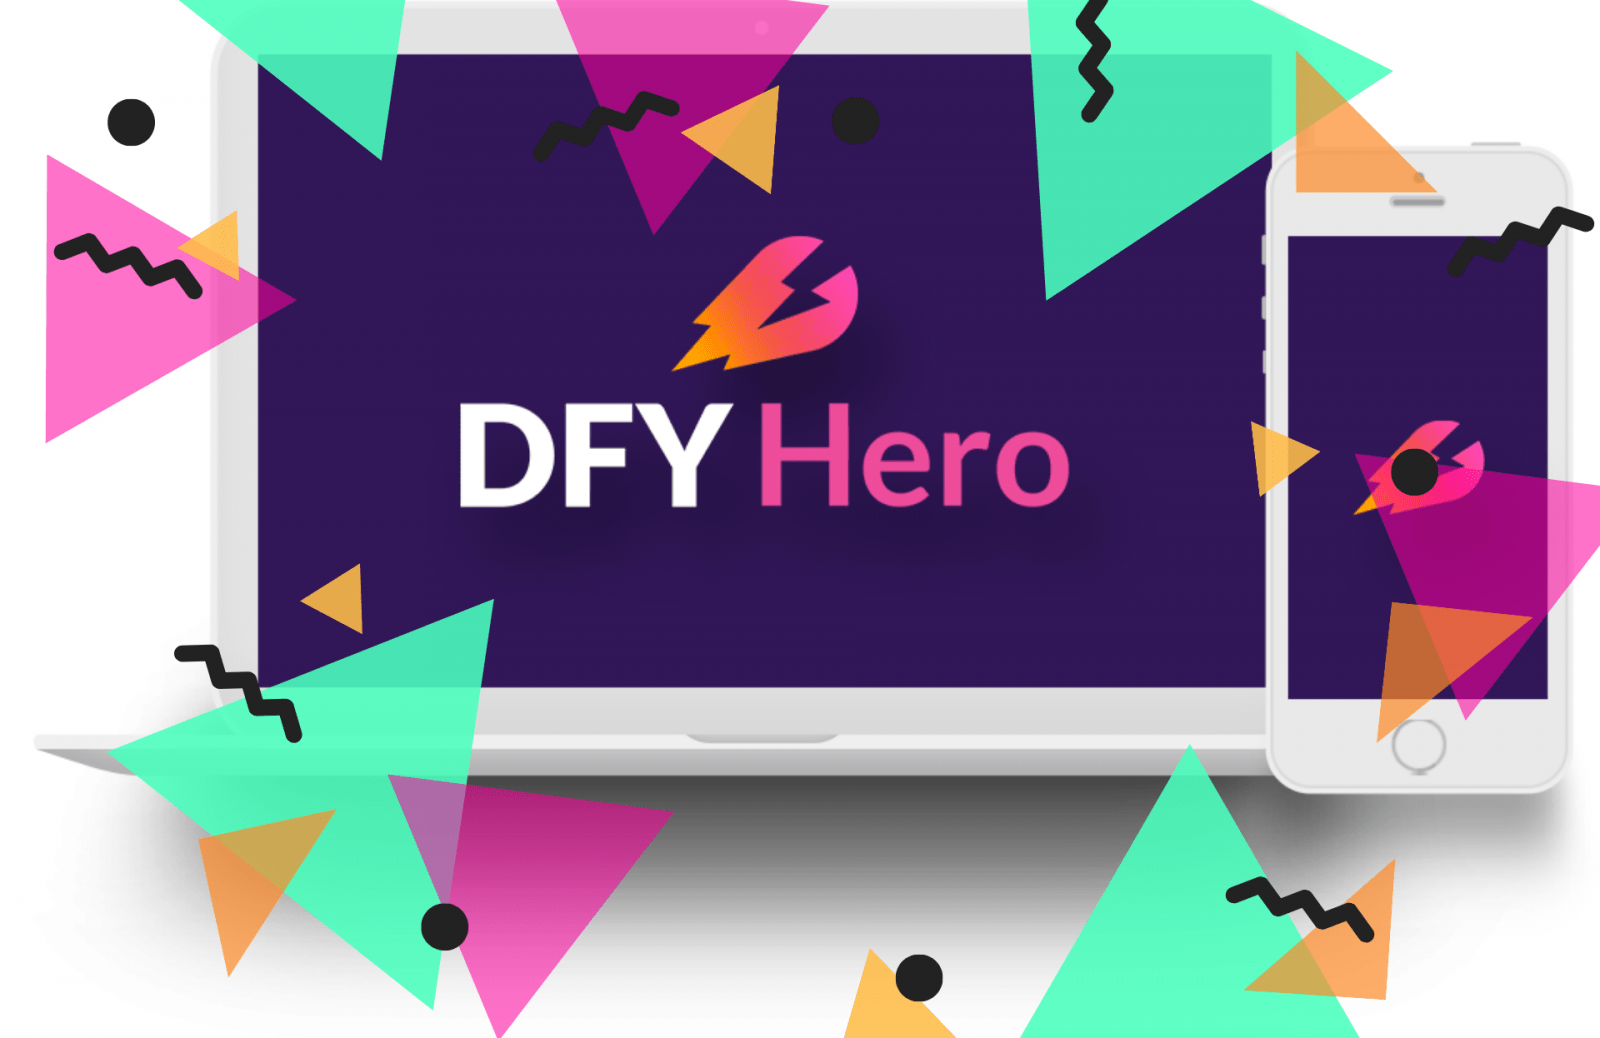 DFY Hero 2.0 Review - What does it do?